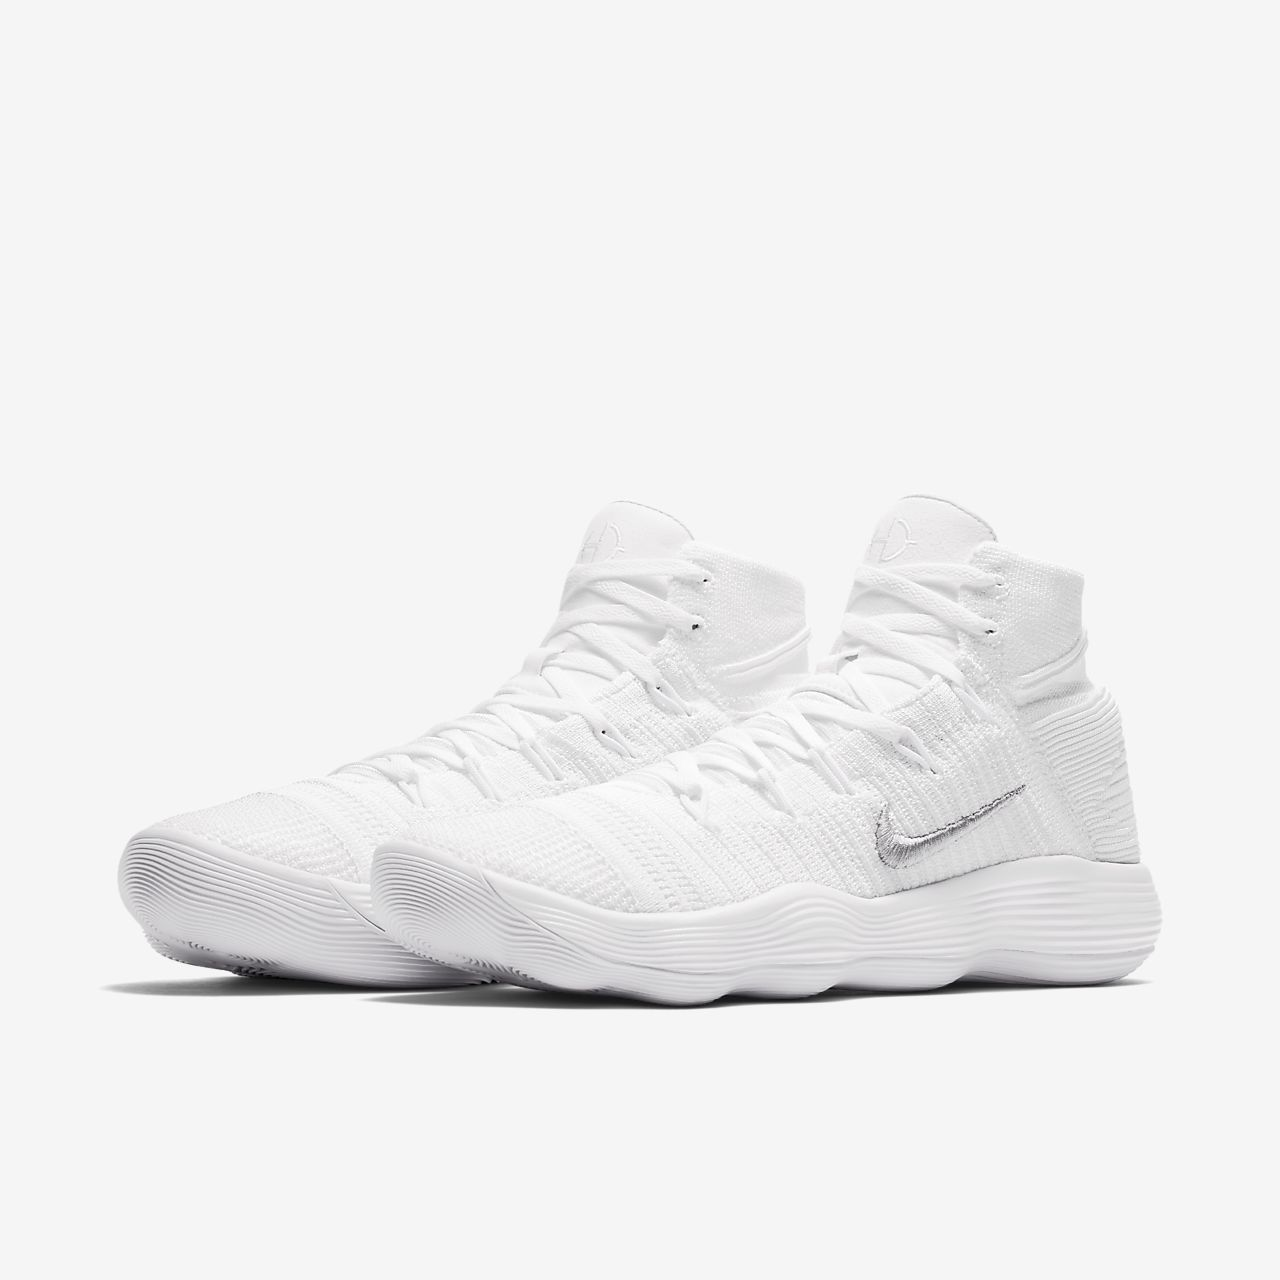 nike basketball shoes hyperdunk 2017. nike react hyperdunk 2017 flyknit basketball shoe shoes d